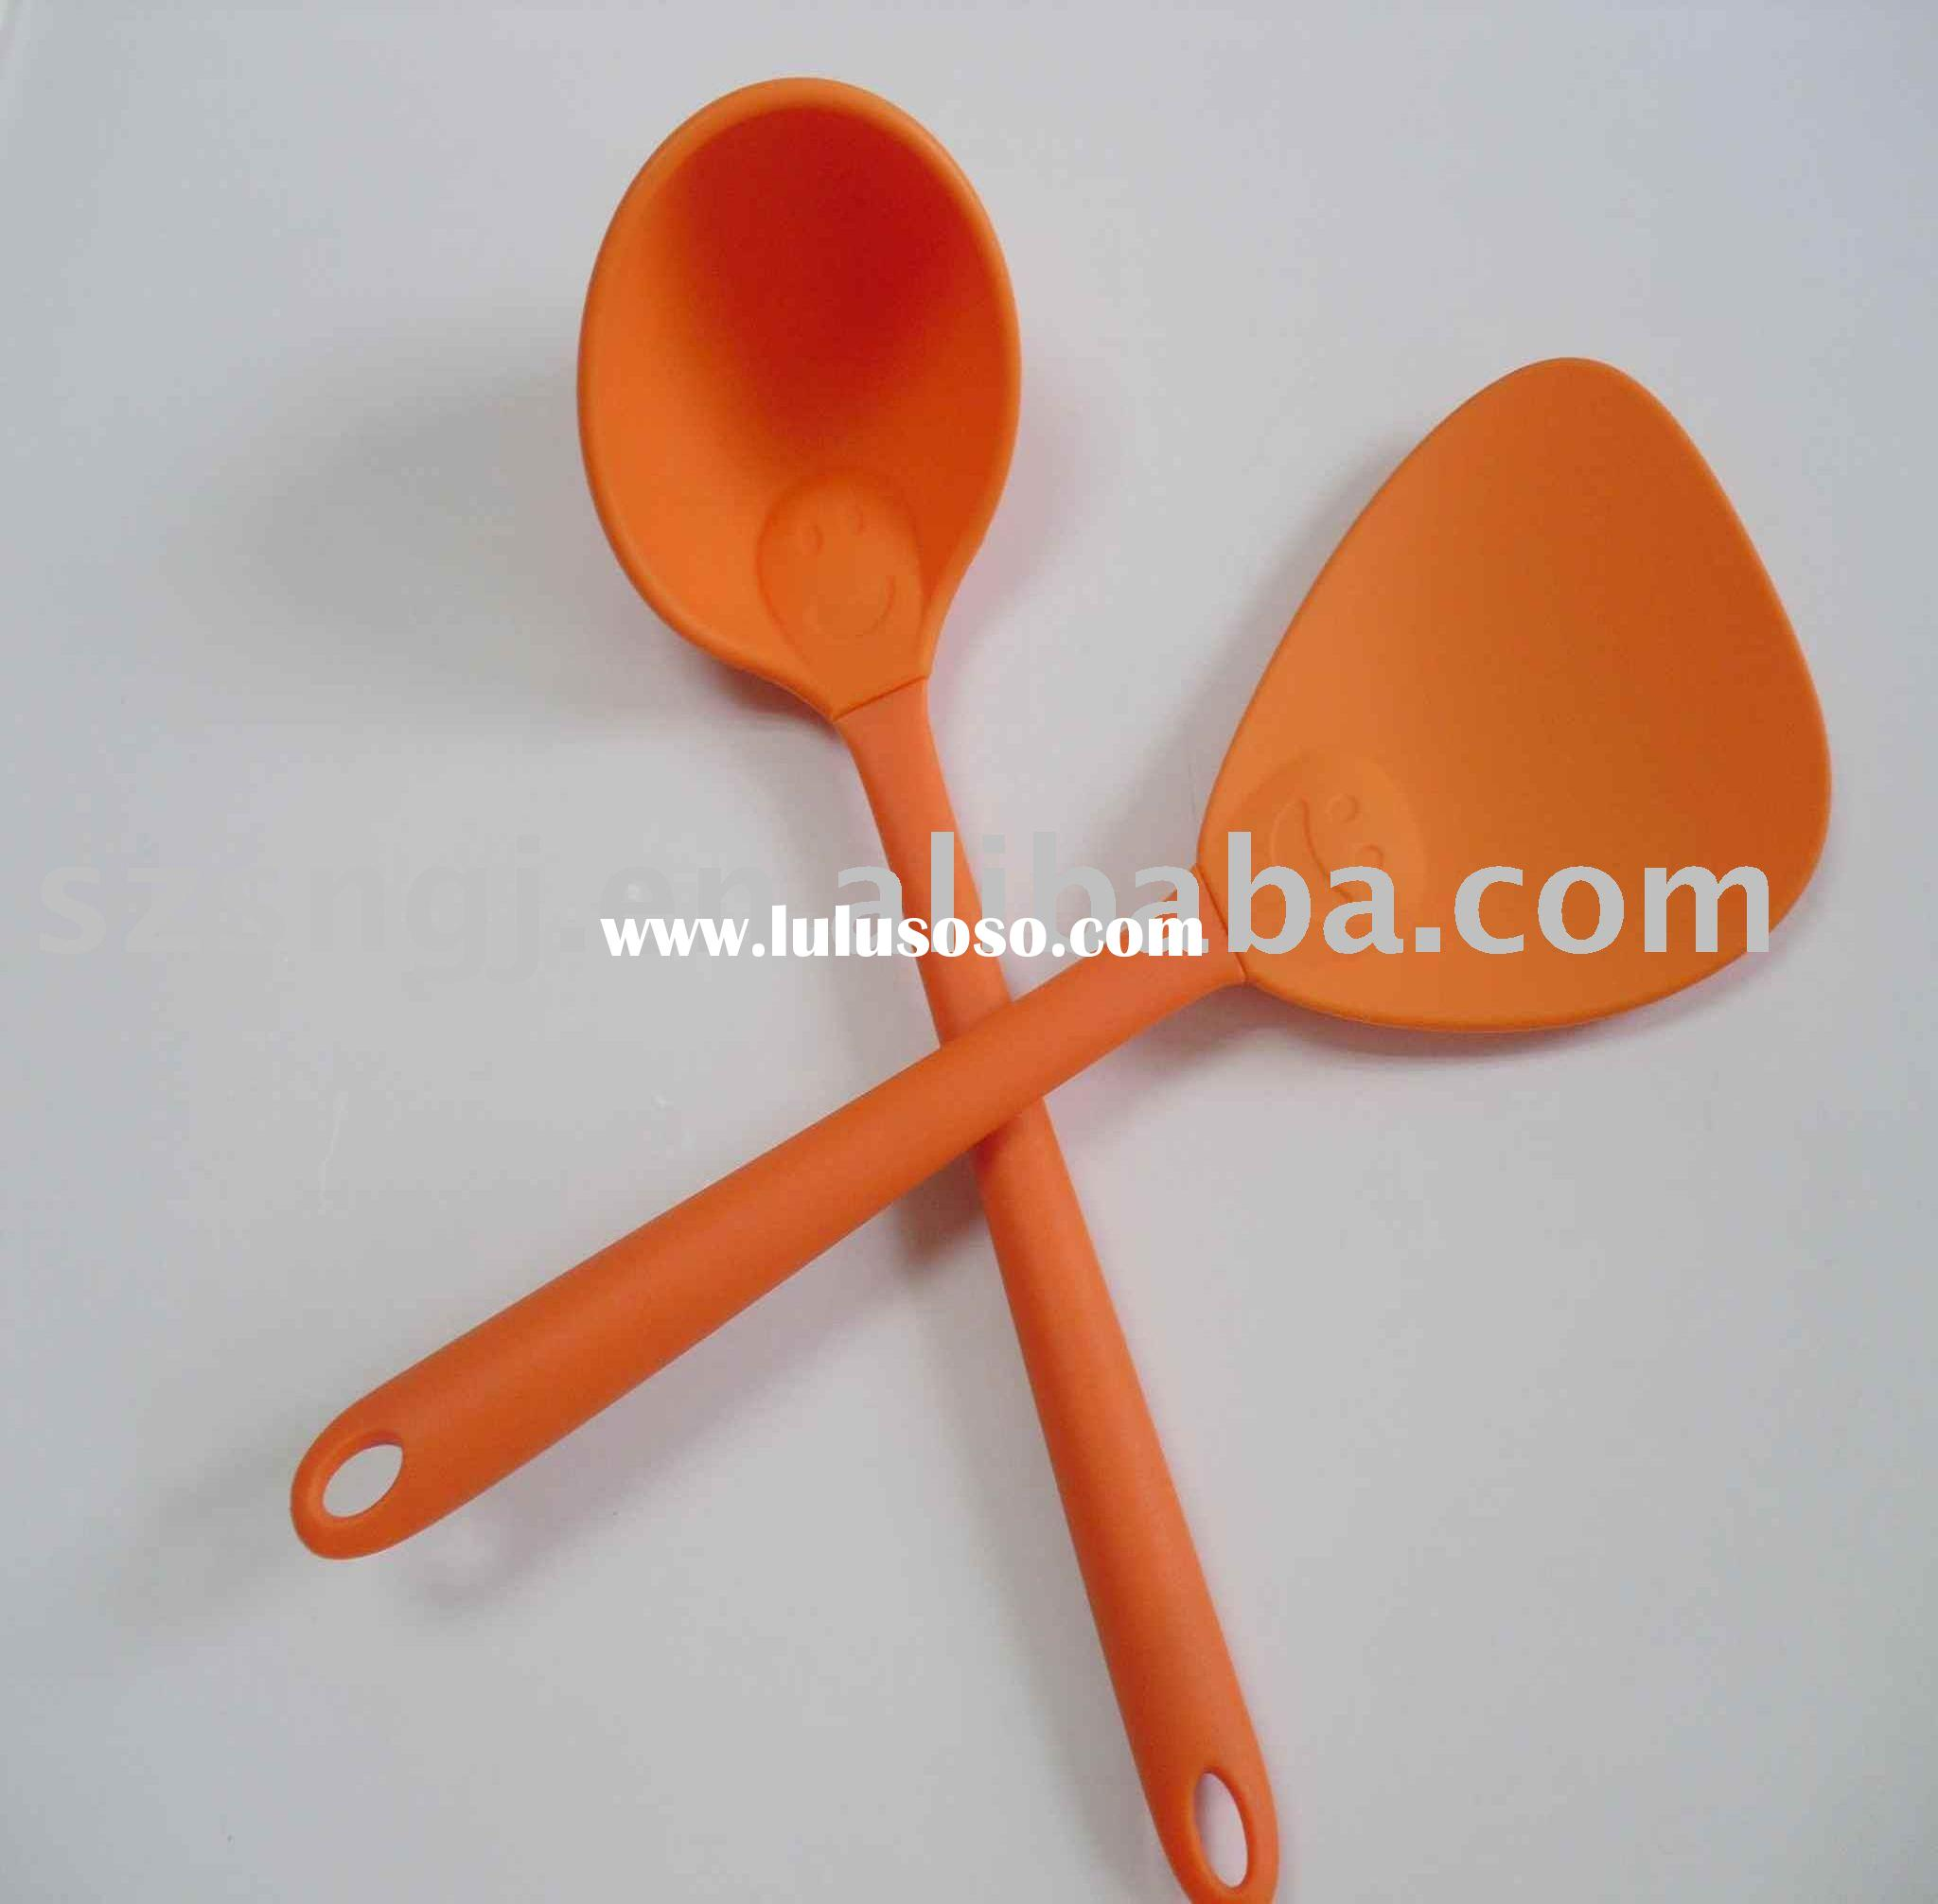 pictures of kitchen utensils and uses, pictures of kitchen ...